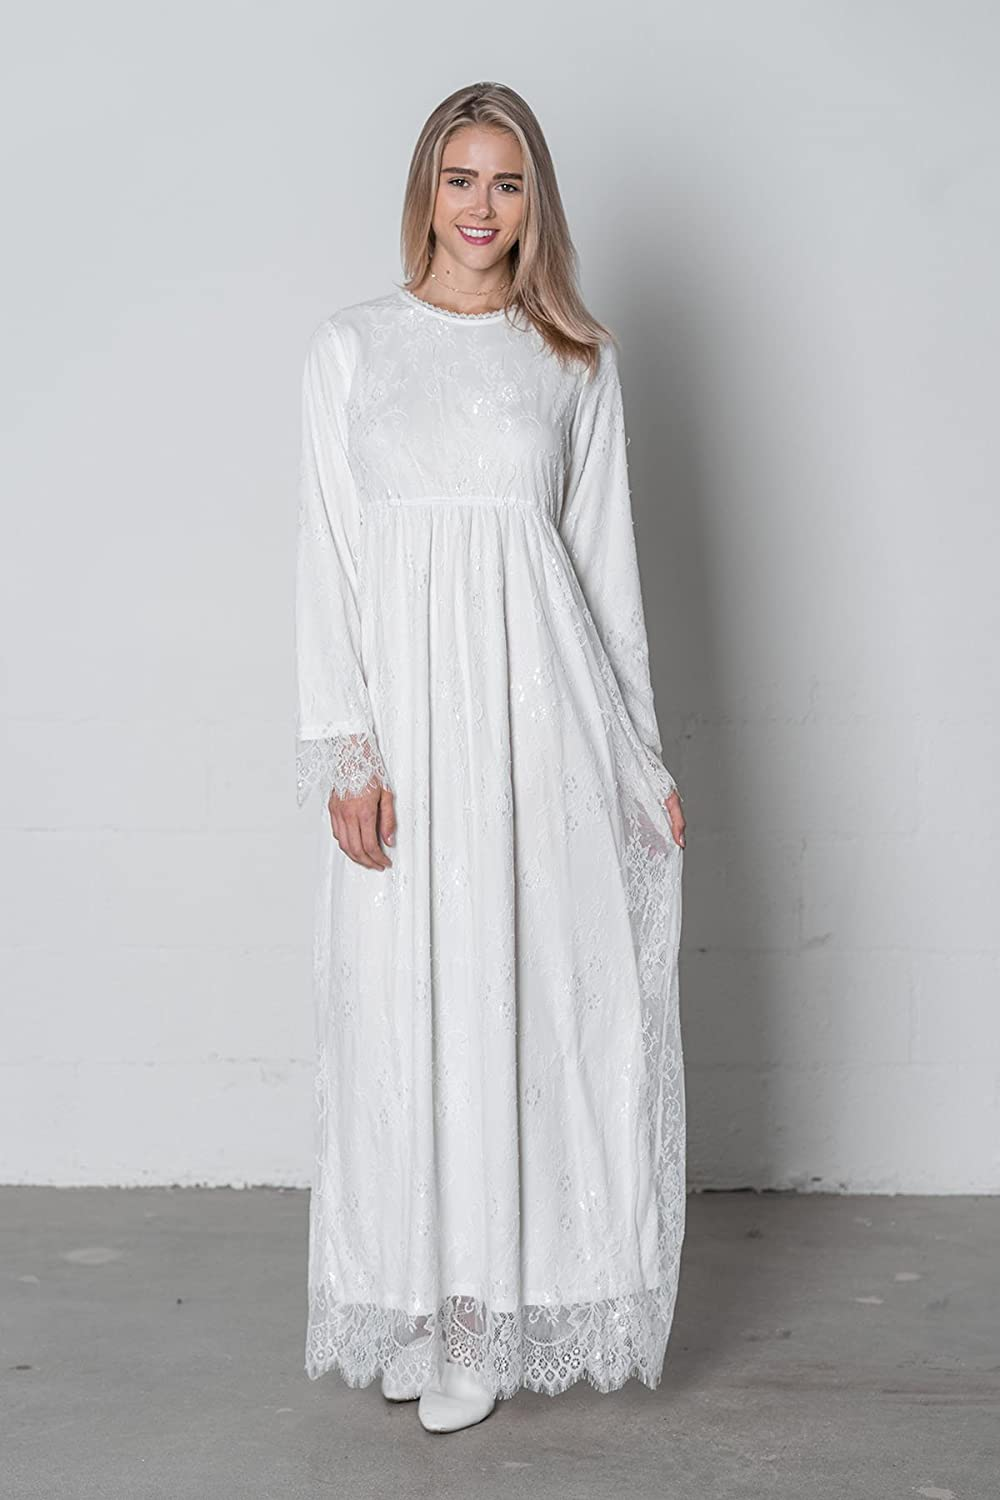 Old Fashioned Dresses | Old Dress Styles ModWhite White Jasmine Dress $74.00 AT vintagedancer.com